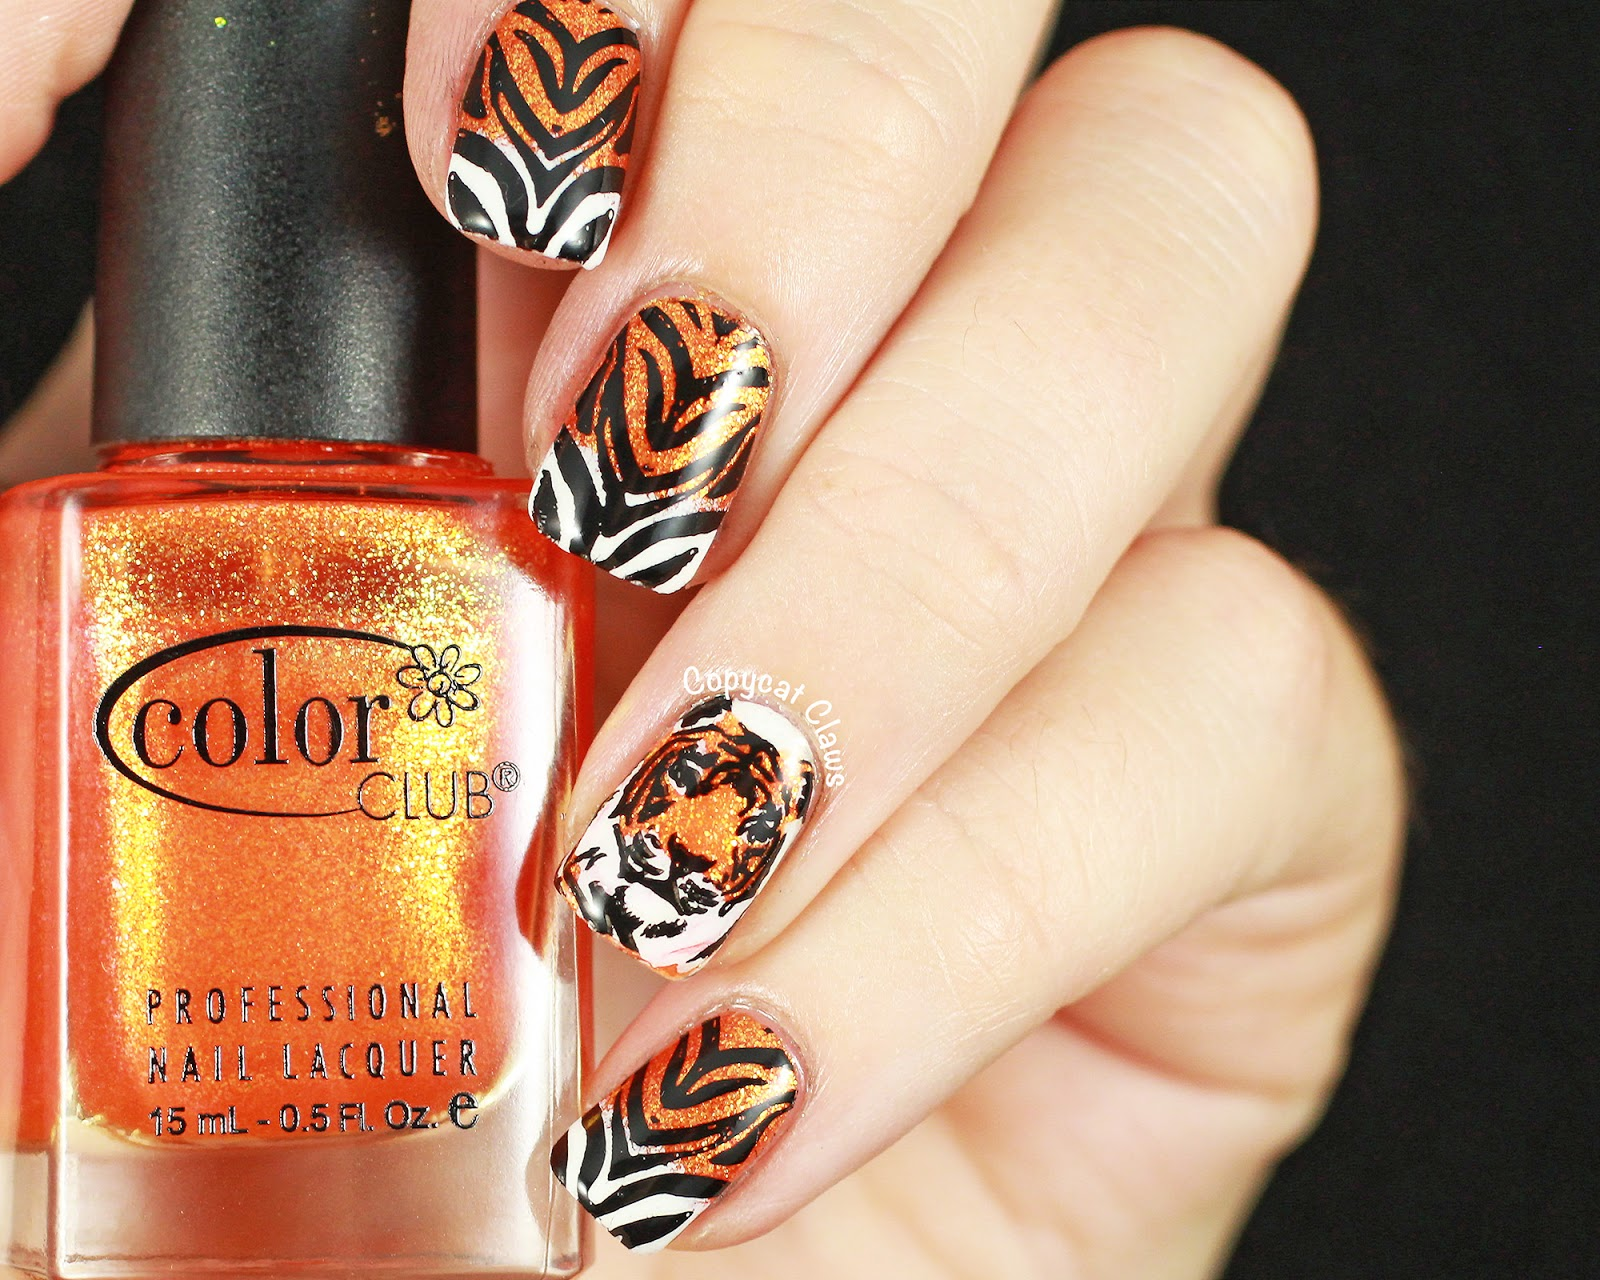 Copycat Claws Sunday Stamping Tiger Nails